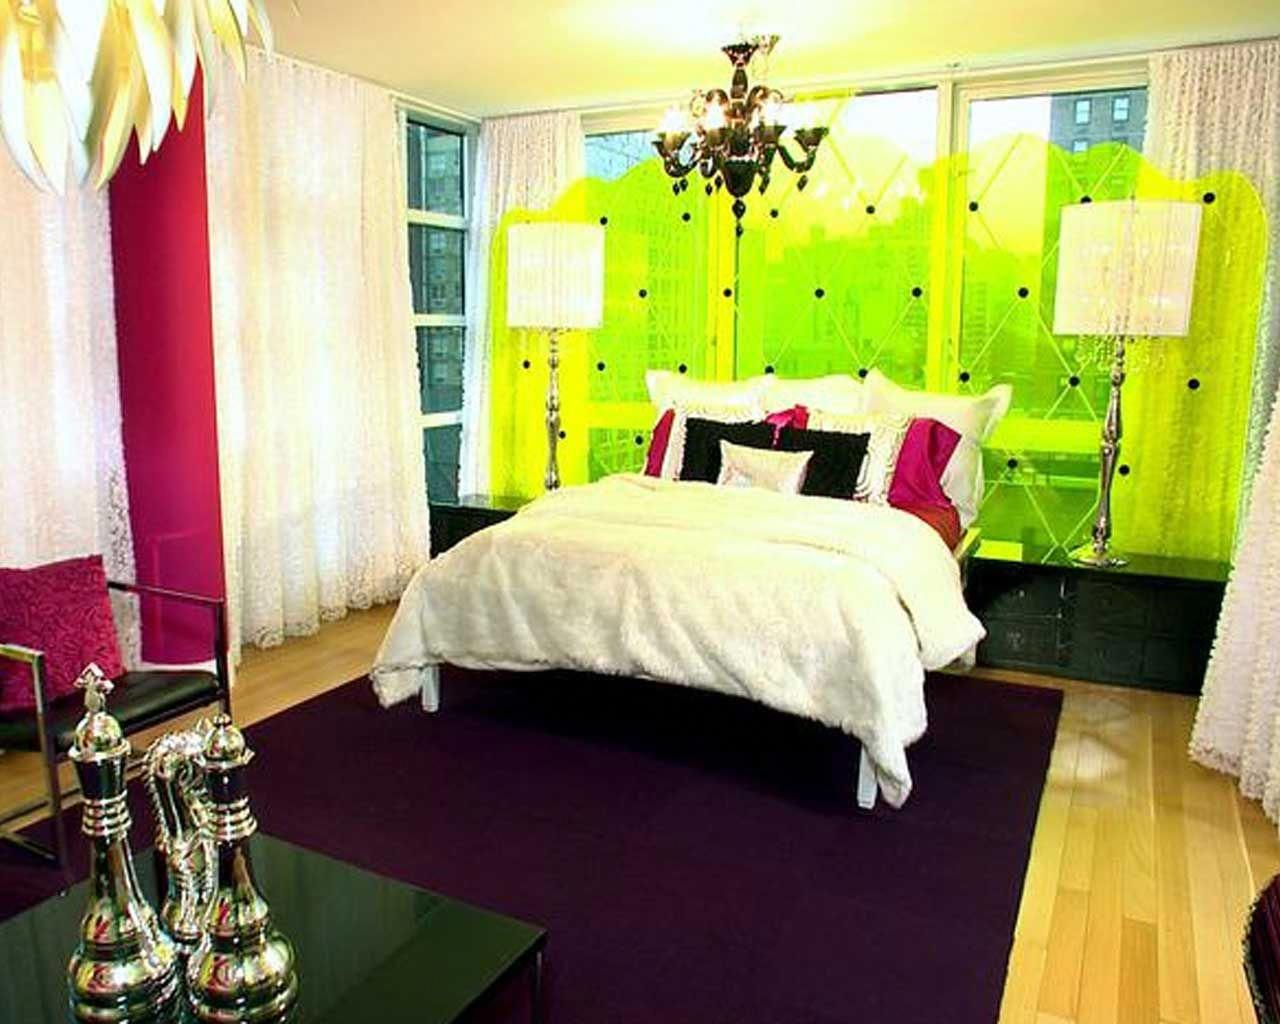 awesome decorating ideas for 1 bedroom apartment diy home decor on rh pinterest com 1 Bedroom Apartment Design Ideas 1 Bedroom Apartment Layout Ideas